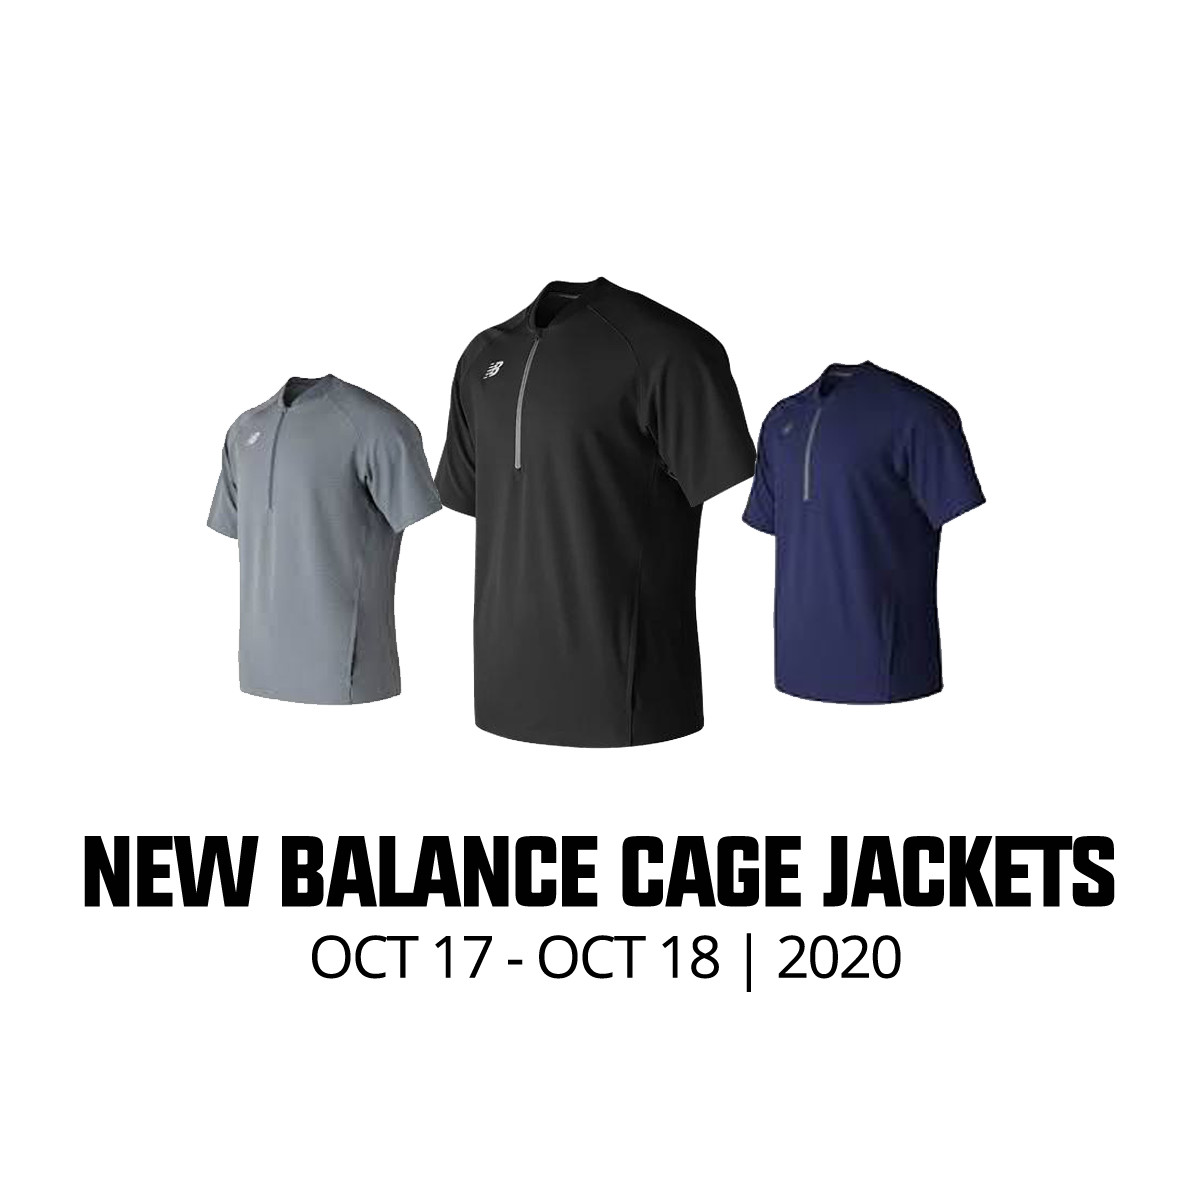 UPSTATE - BATTLE FOR THE CAGE JACKET